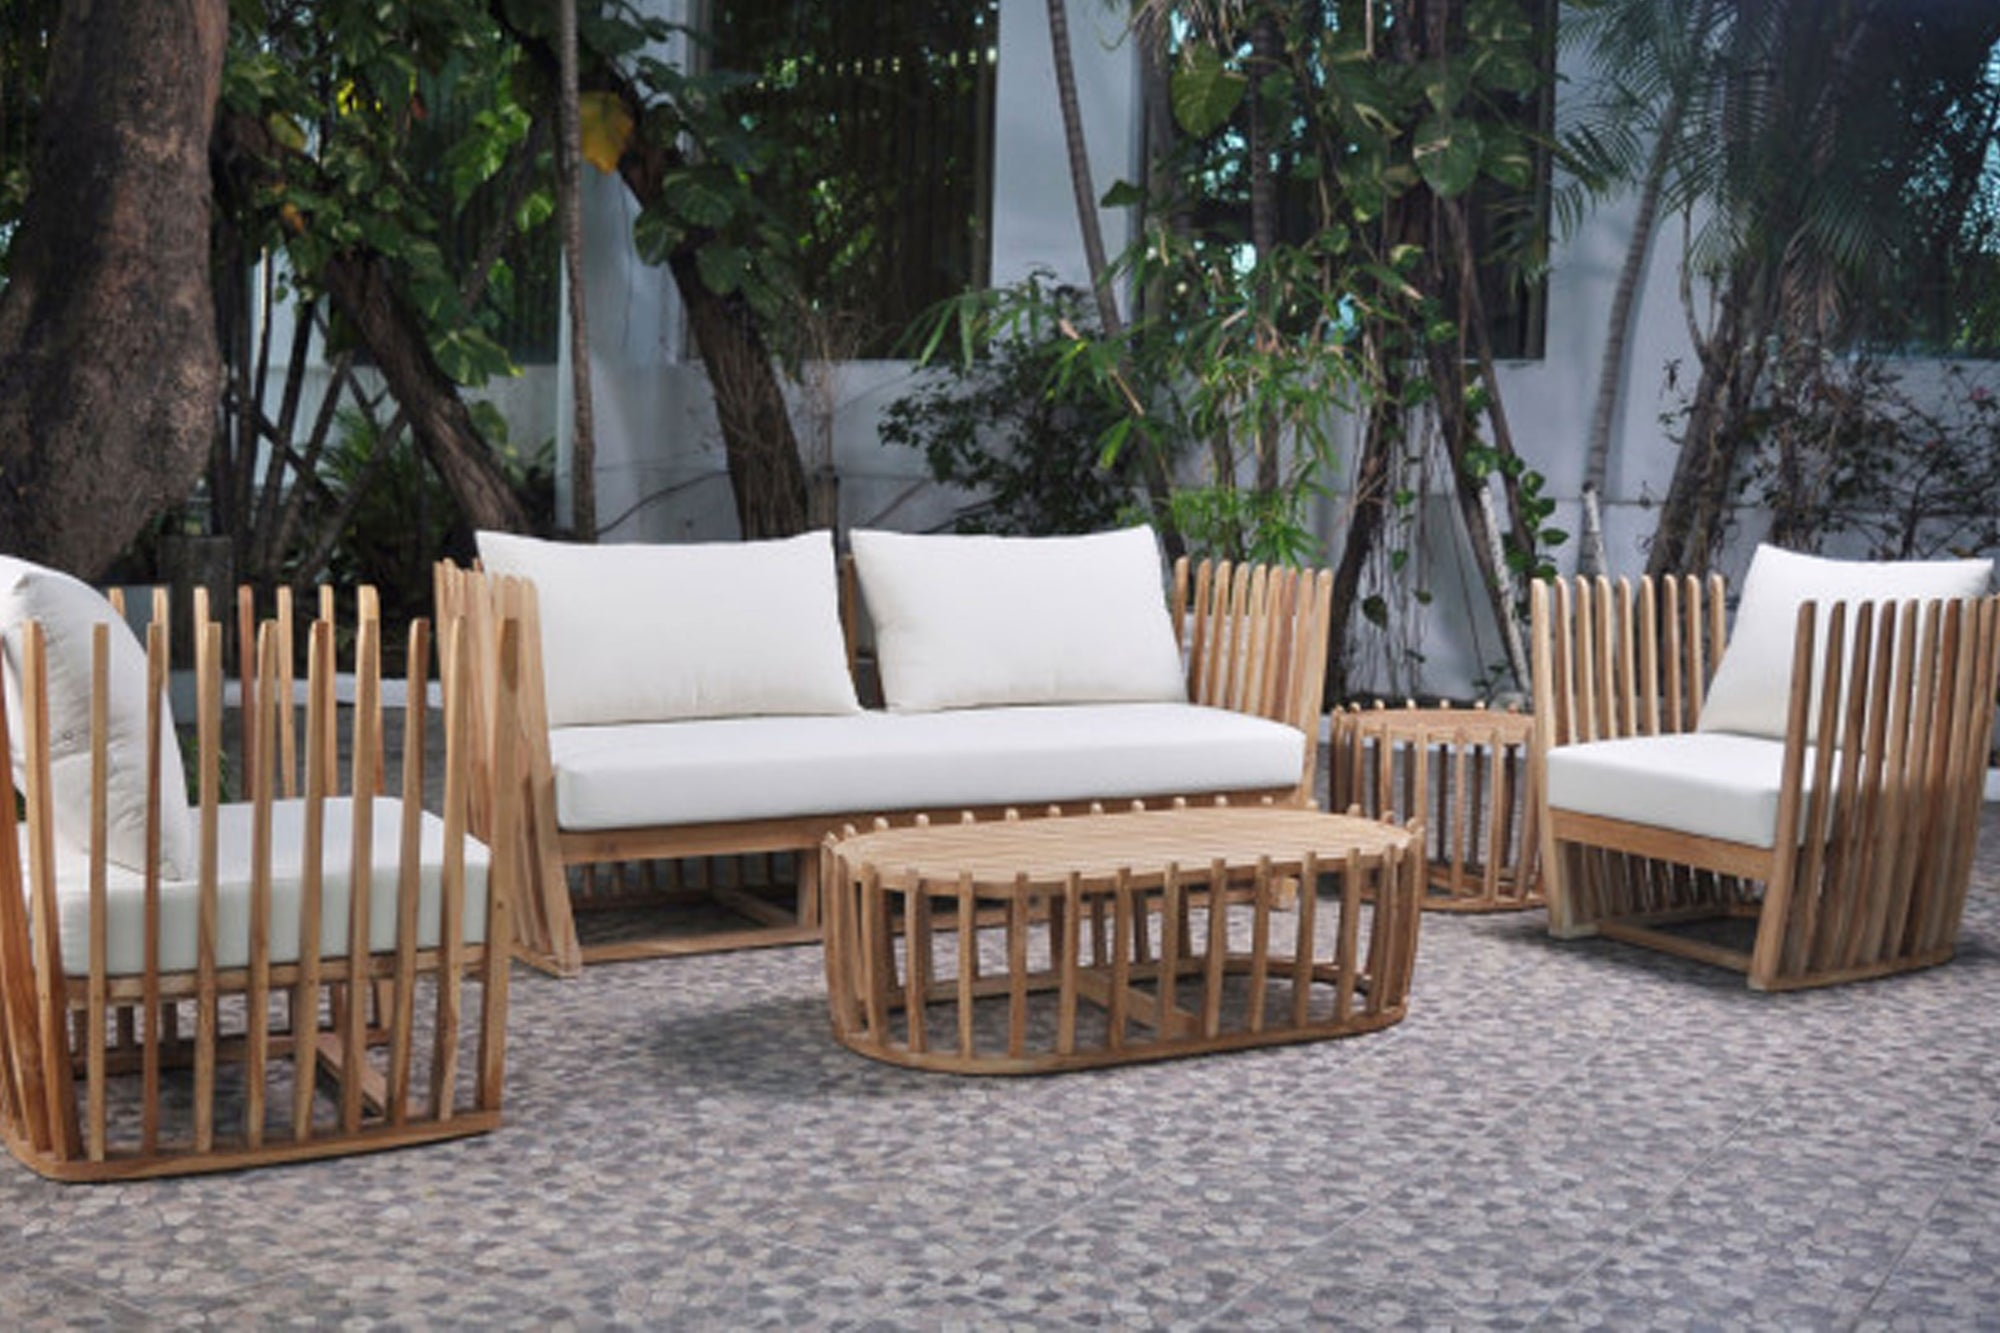 Throne Teak 5 PC Seating Set w/off-white cushions